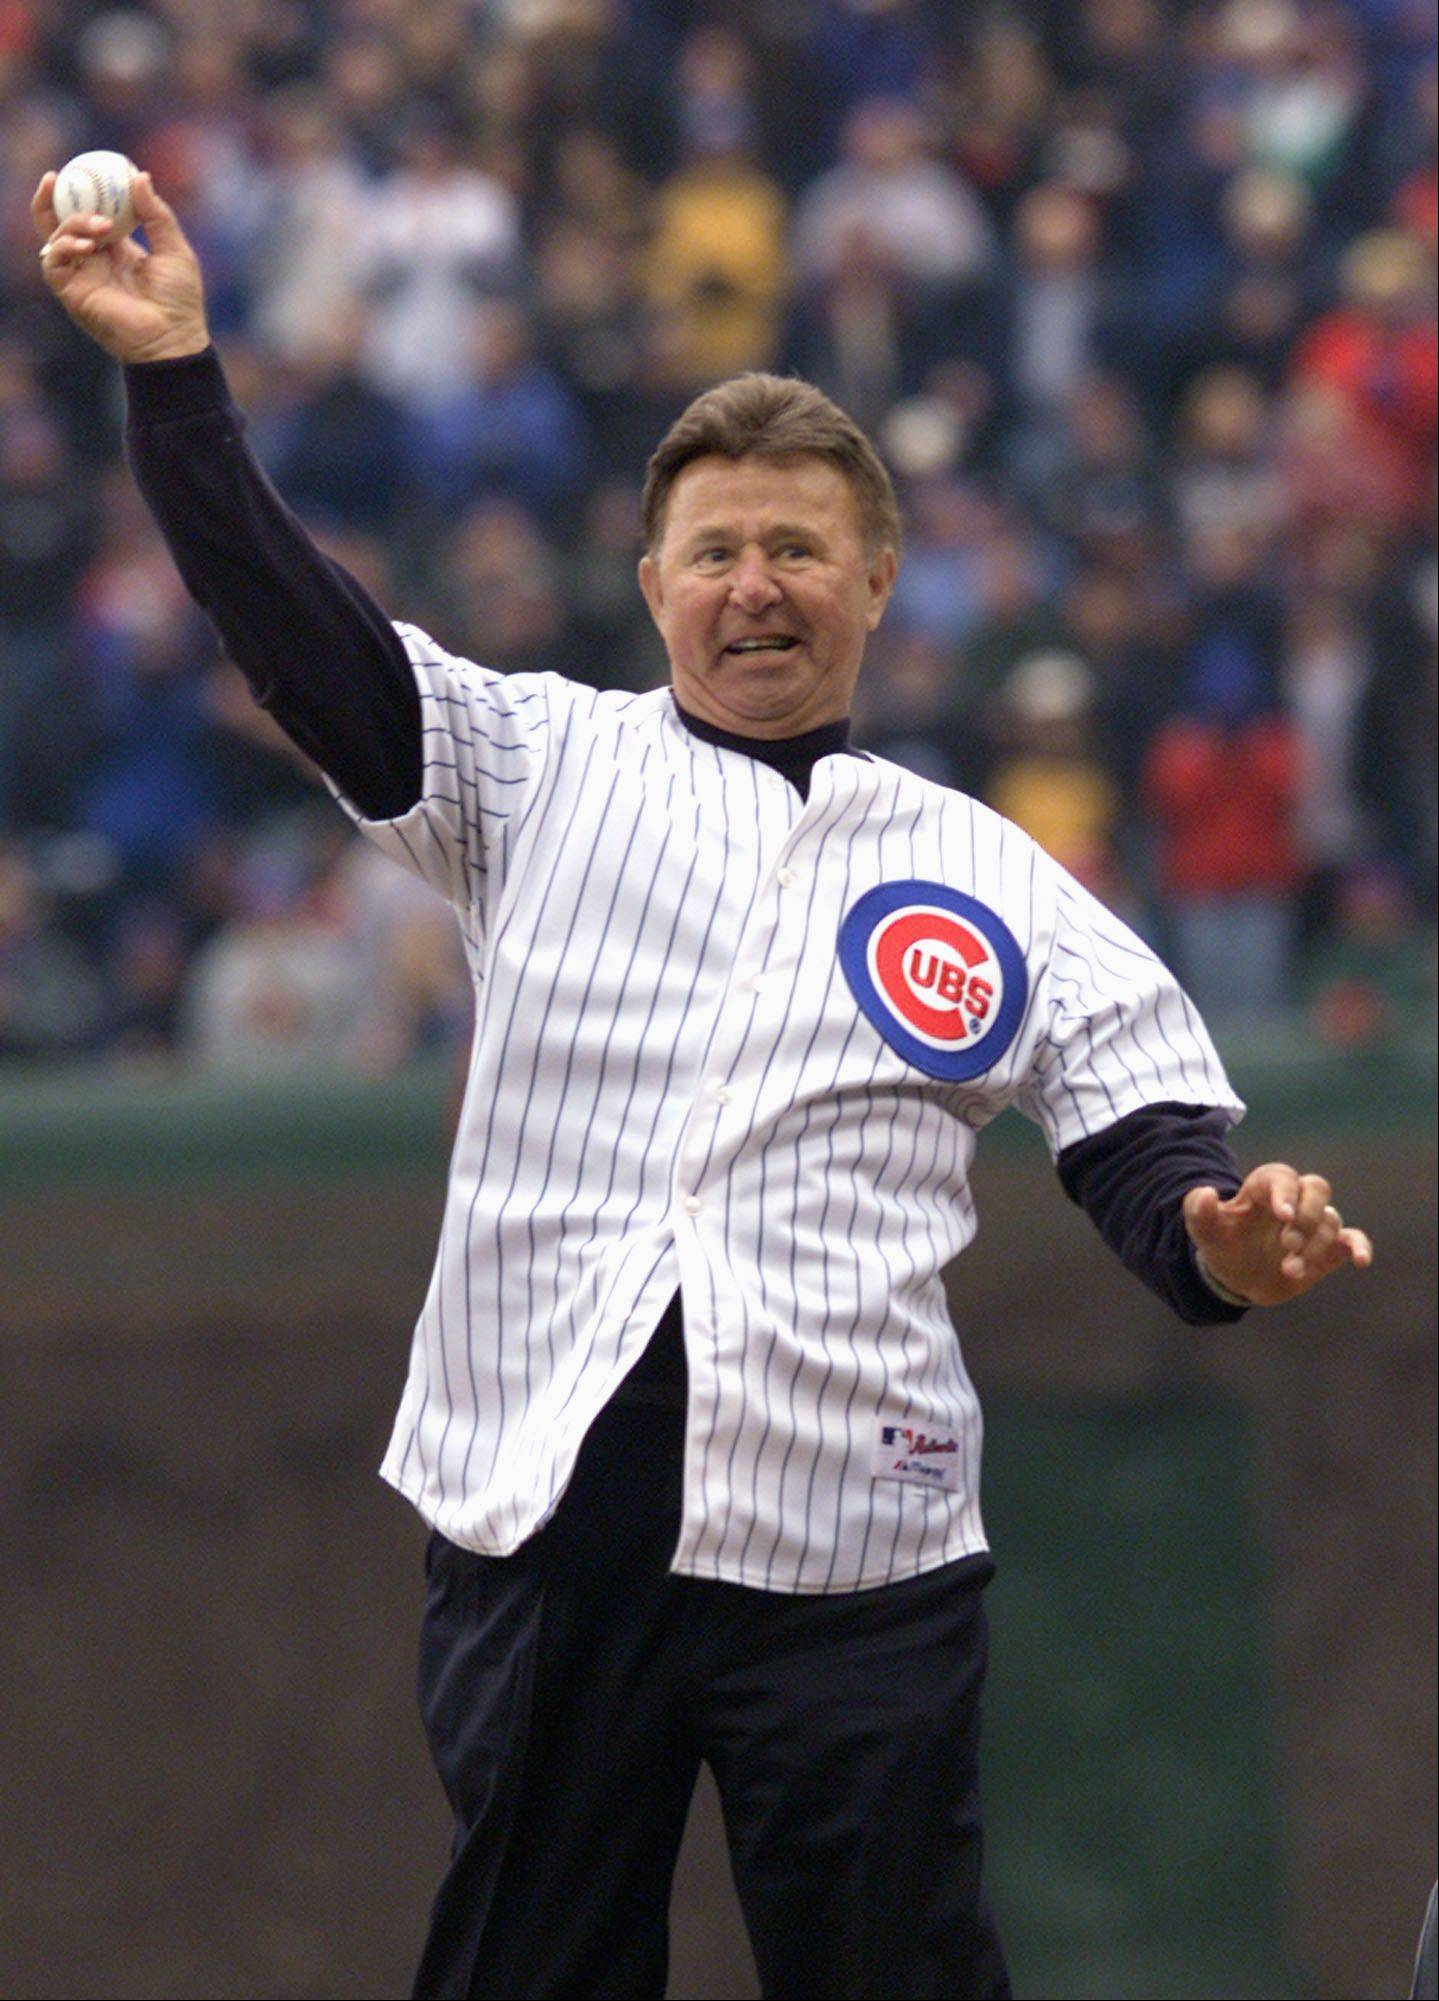 This April 5, 2002, file photo shows former Cubs third baseman and now Hall of Famer Ron Santo throwing out the ceremonial first pitch before the home opener at Wrigley Field.